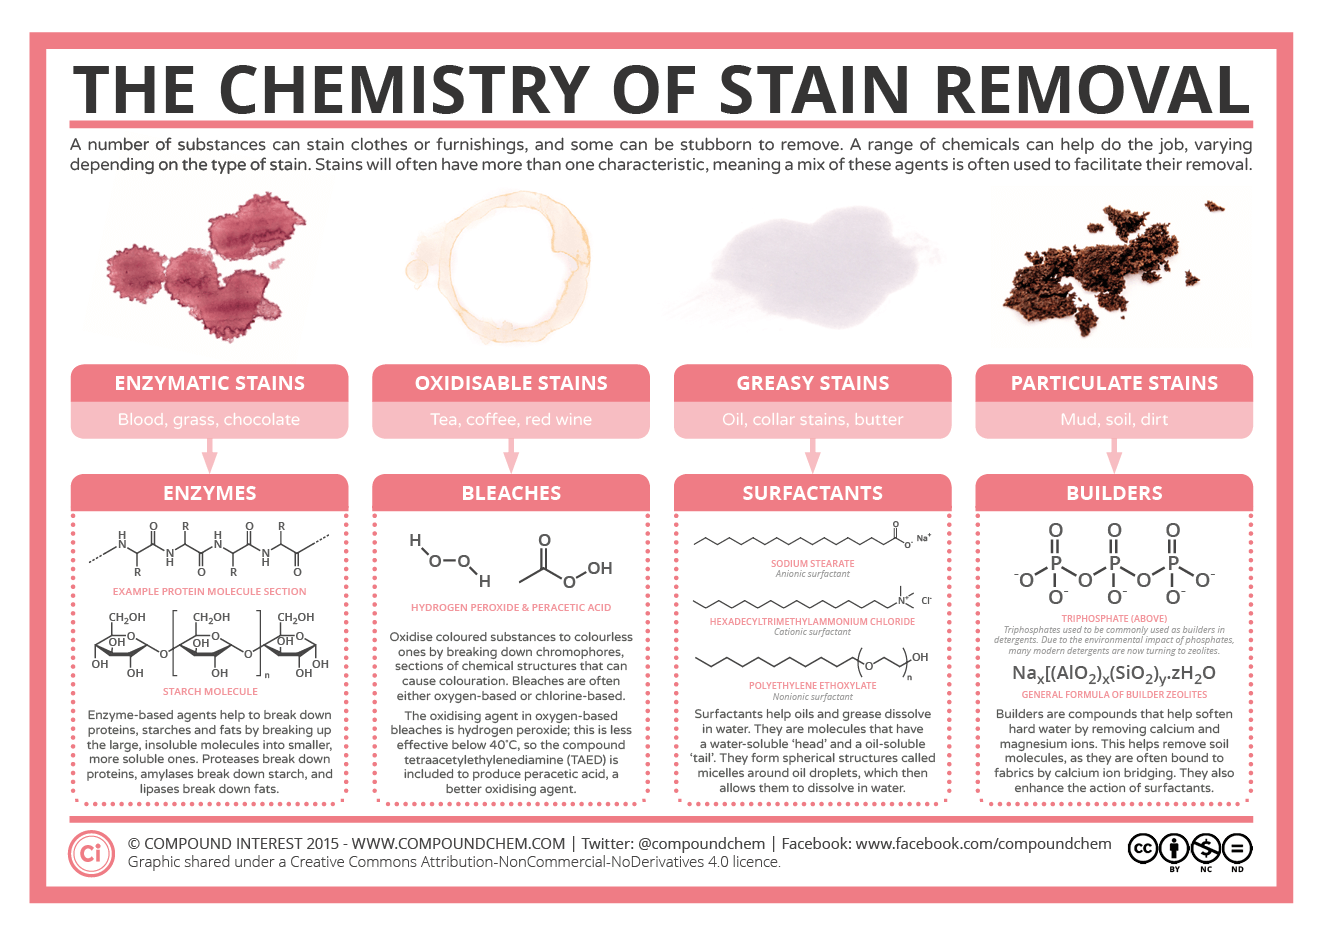 The Chemistry of Stain Removal | Compound Interest